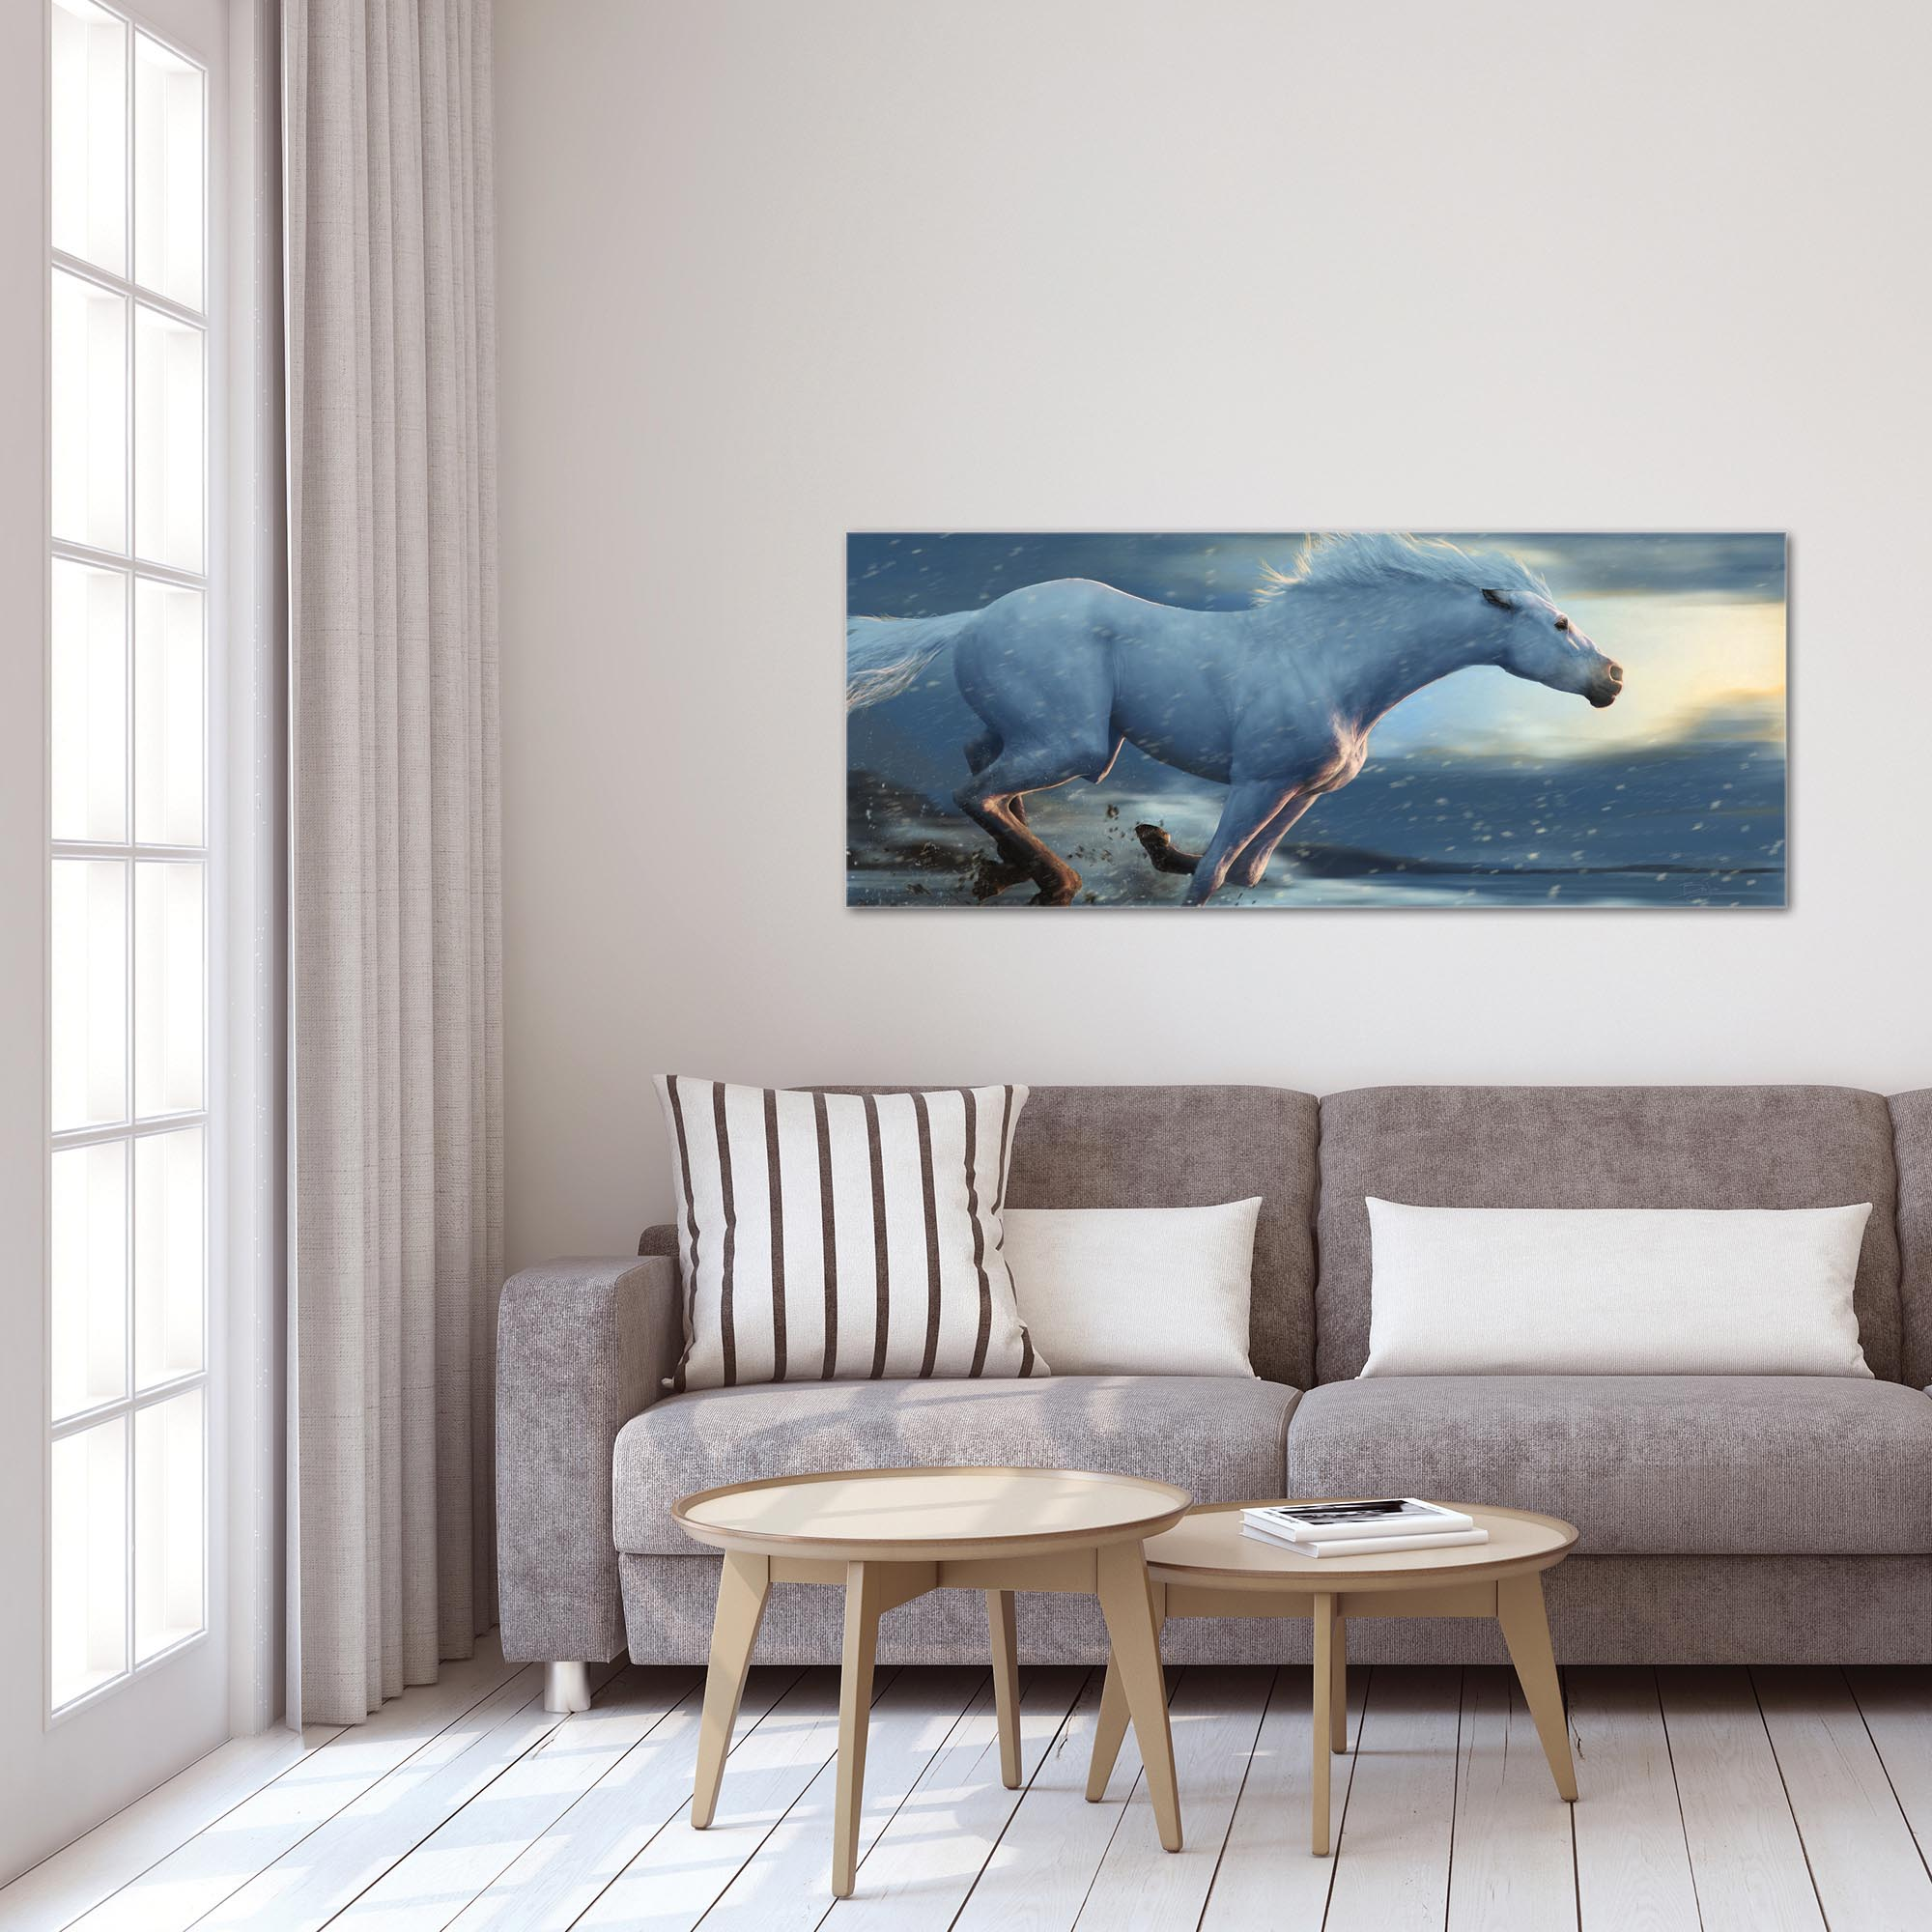 Expressionist Wall Art 'Running Horse' - Wildlife Decor on Metal or Plexiglass - Image 3